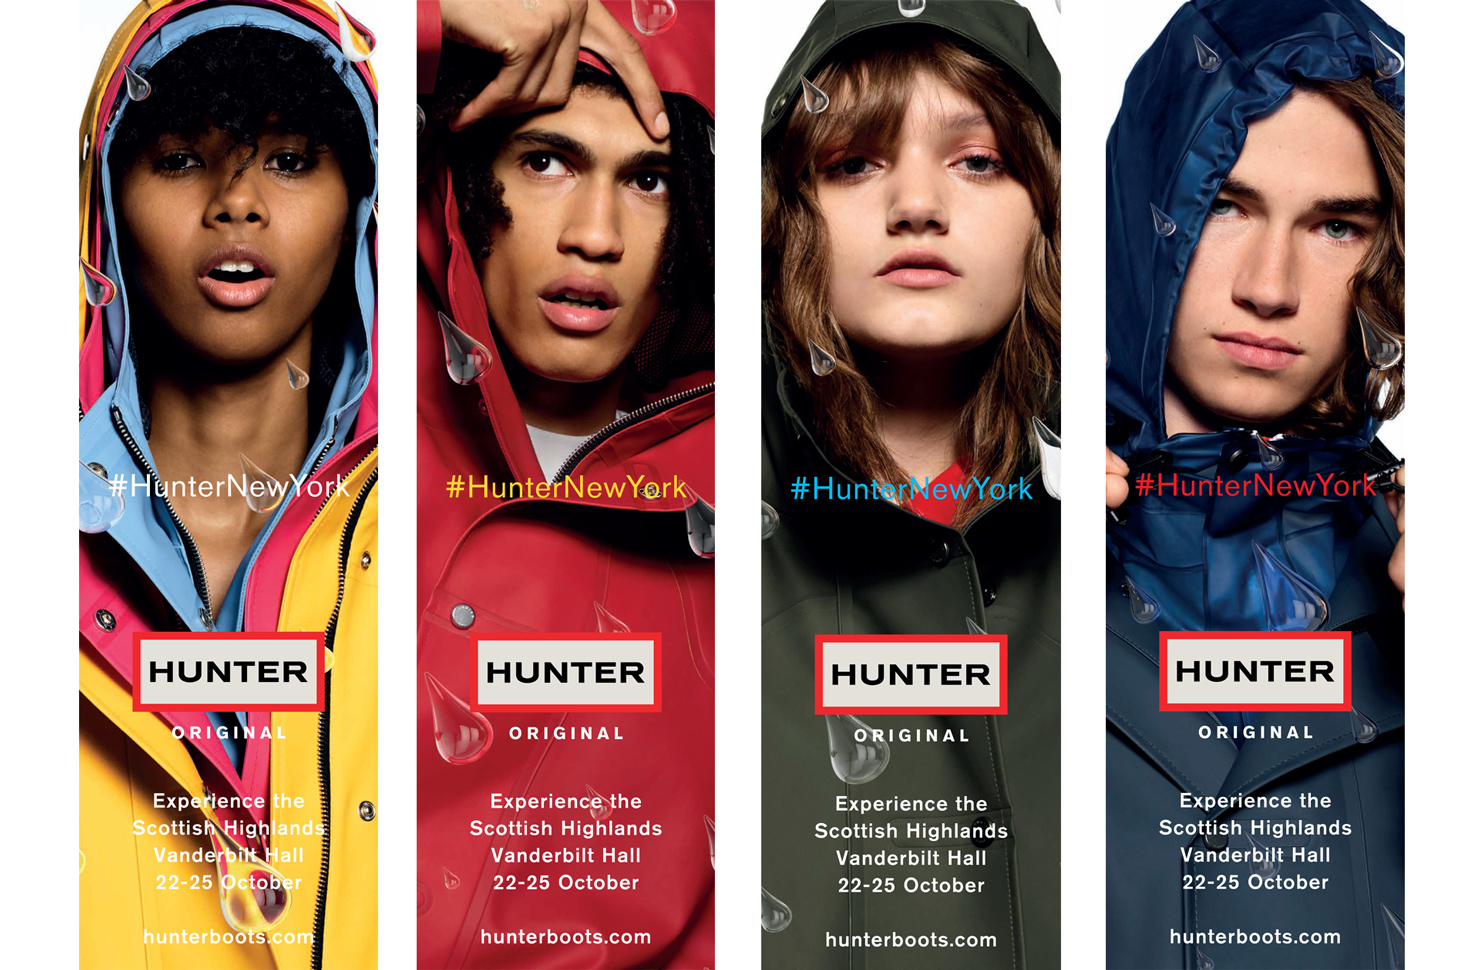 feature-hunter-ooh-artwork-advert